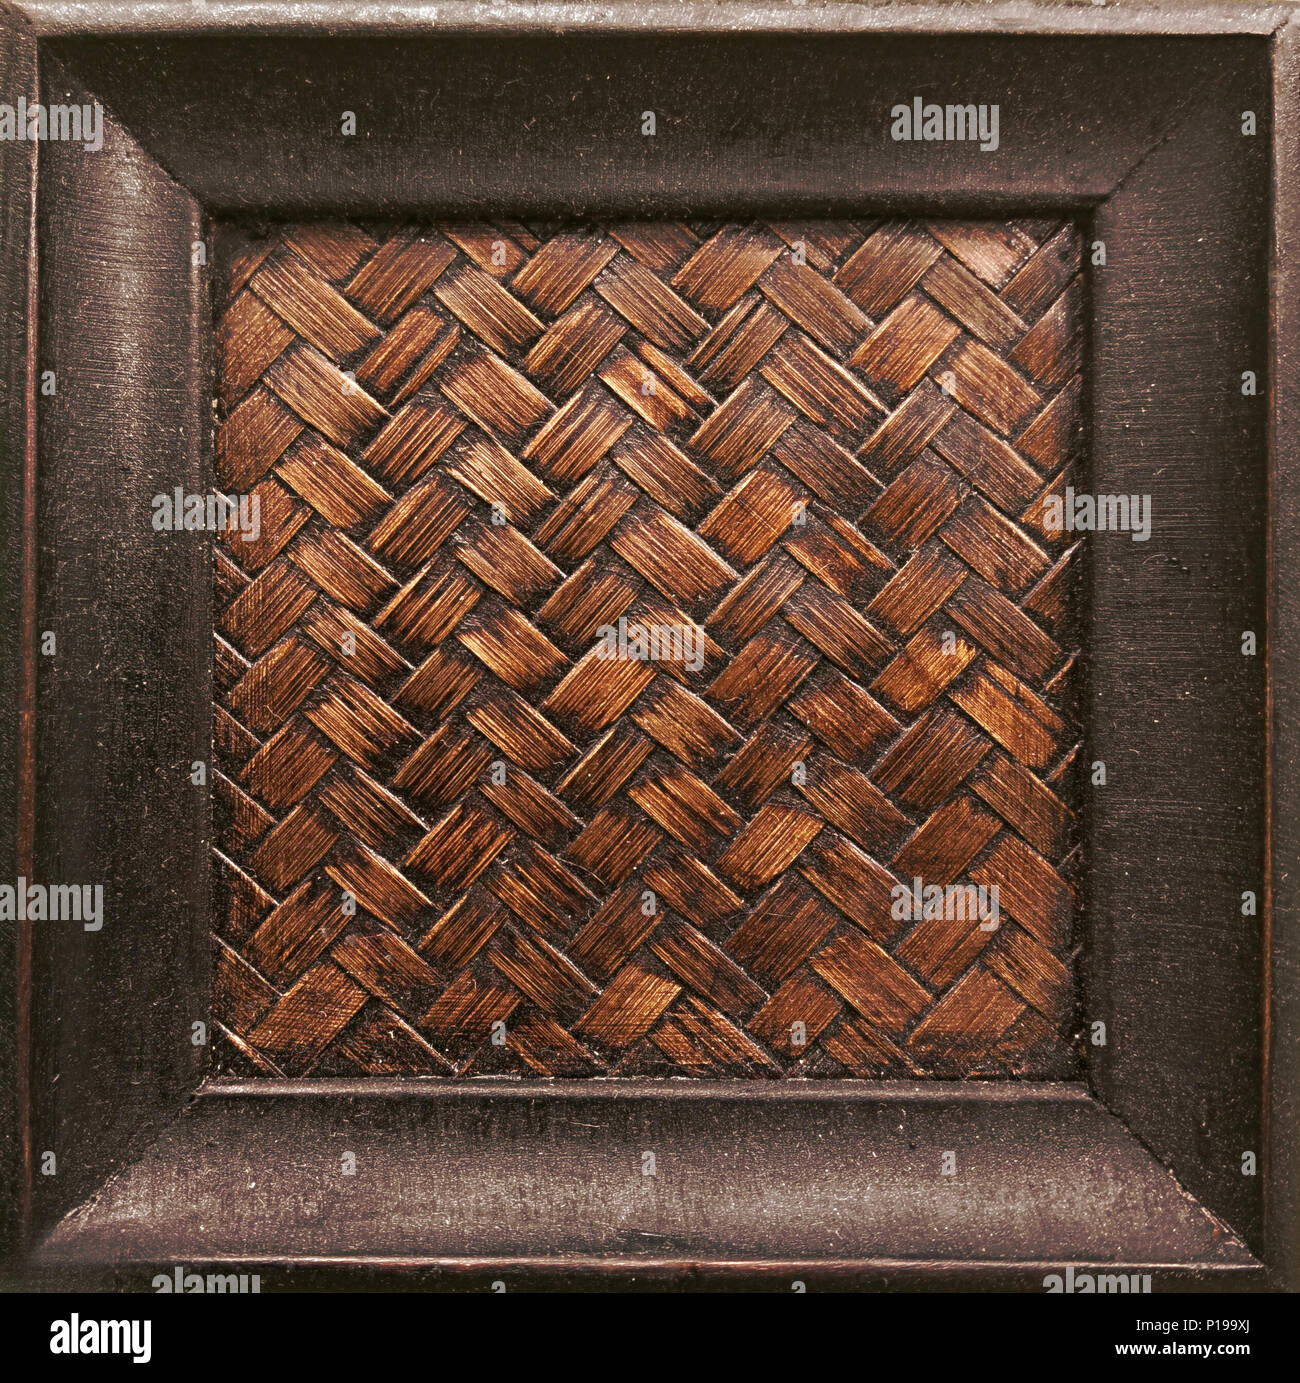 Old grunge brown rustic wooden picture frame use for text or product display Stock Photo